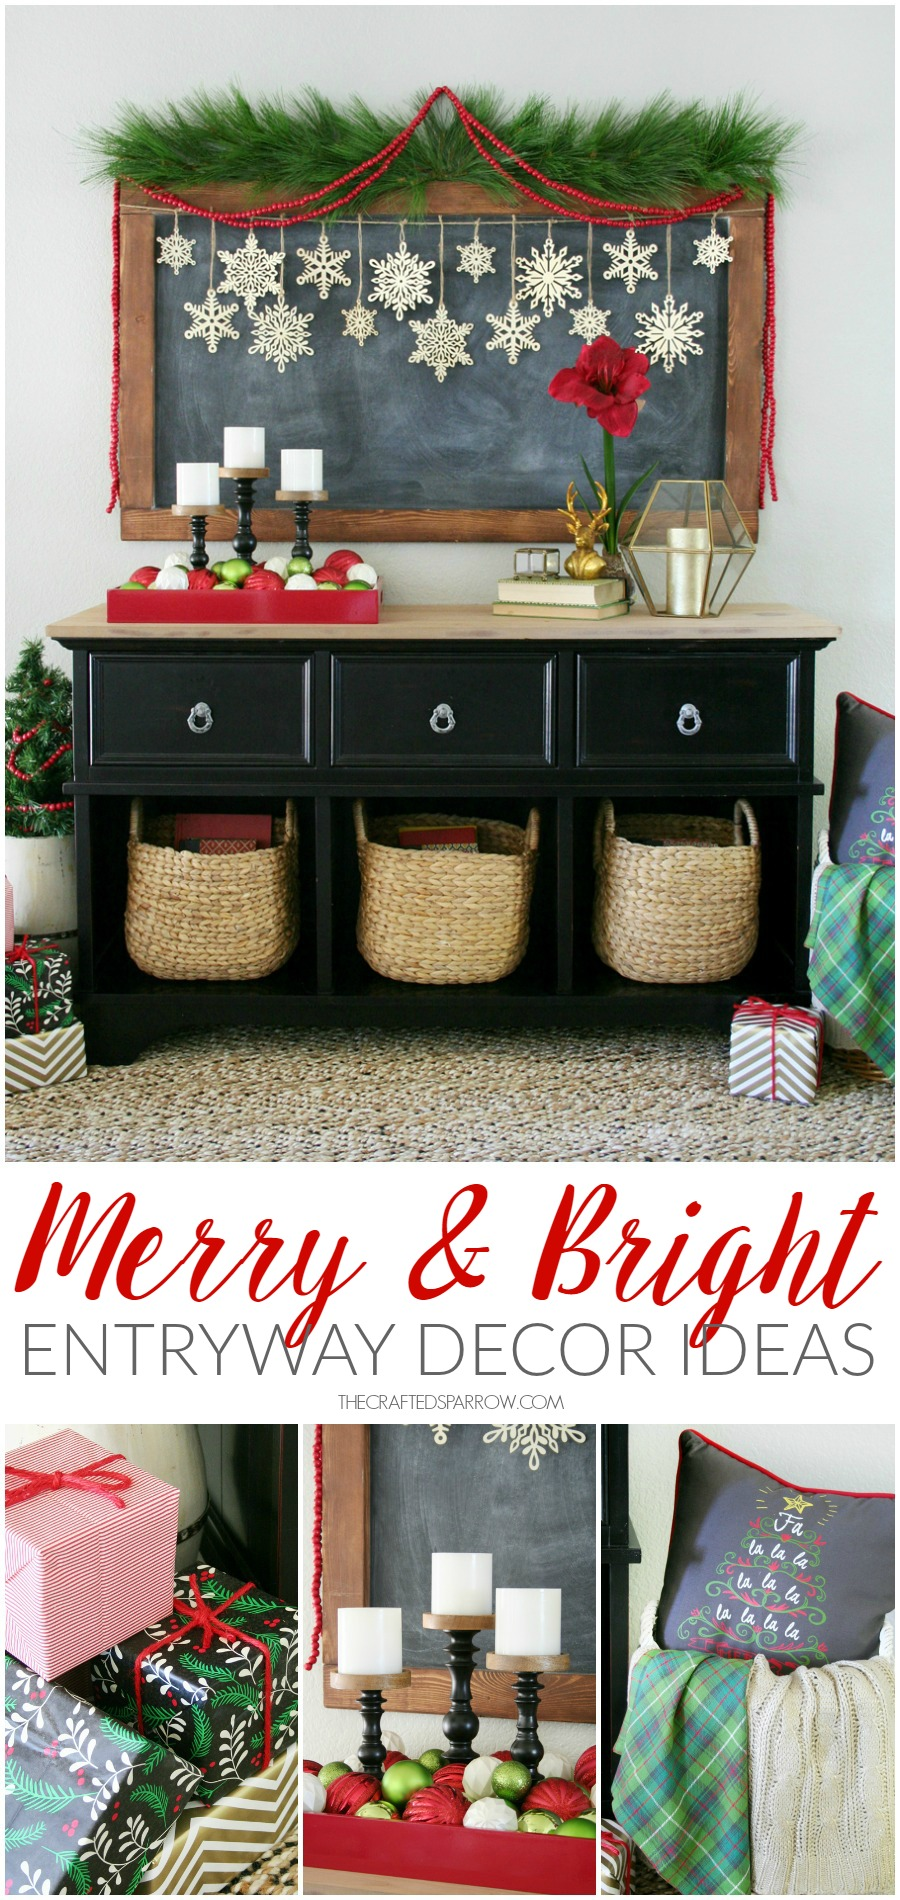 Merry & Bright Holiday Entryway